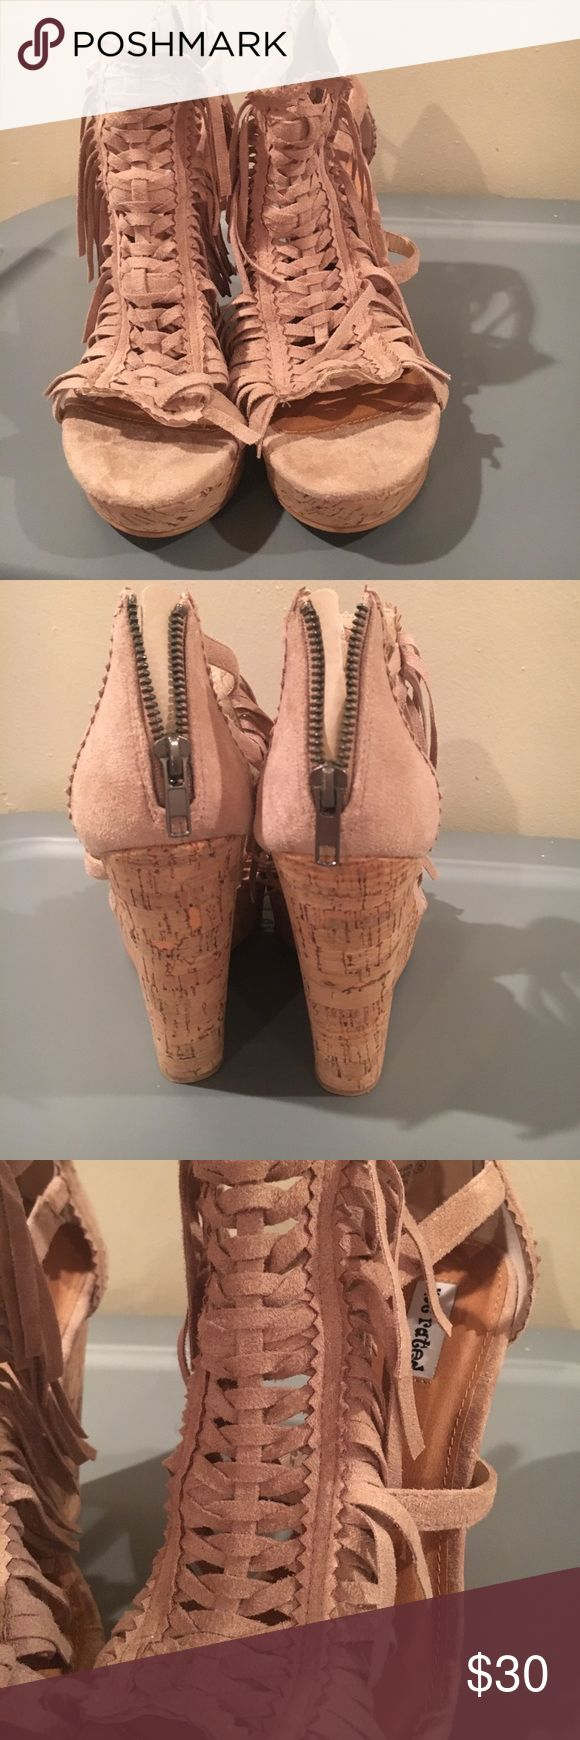 "Not Rated Cork wedges with tan fringe size 8 Not Rated wedges from Buckle with cork and tan fringe. Zipper back. Size 8. Brand new without tags. Never worn. Heels 4.5"" Not Rated Shoes Wedges"